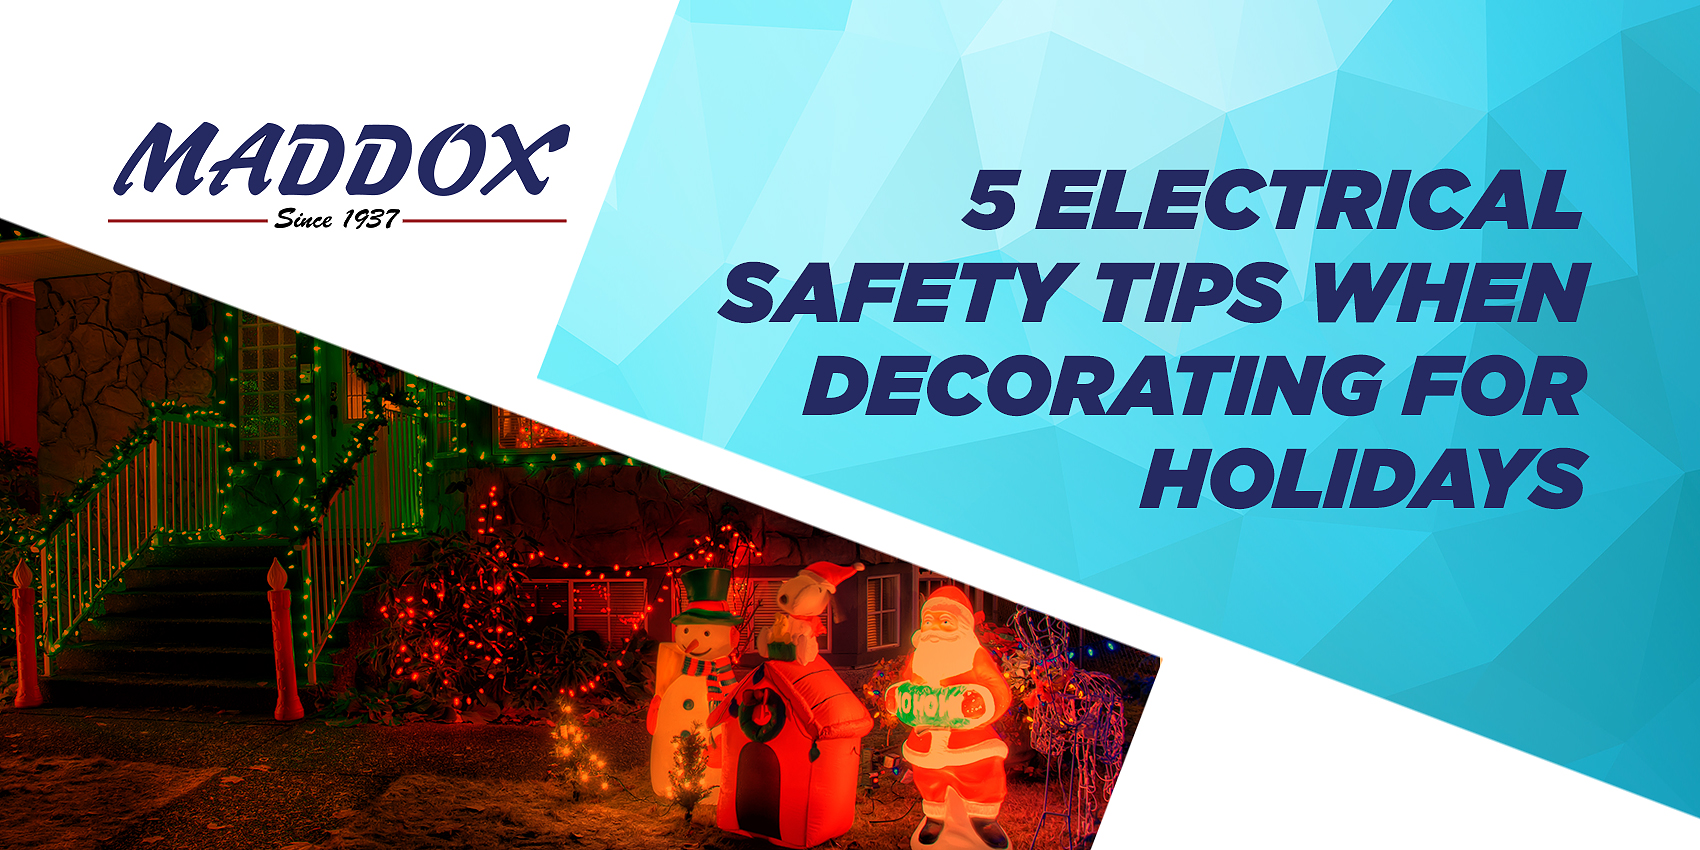 5 Electrical Safety Tips When Decorating For Holidays